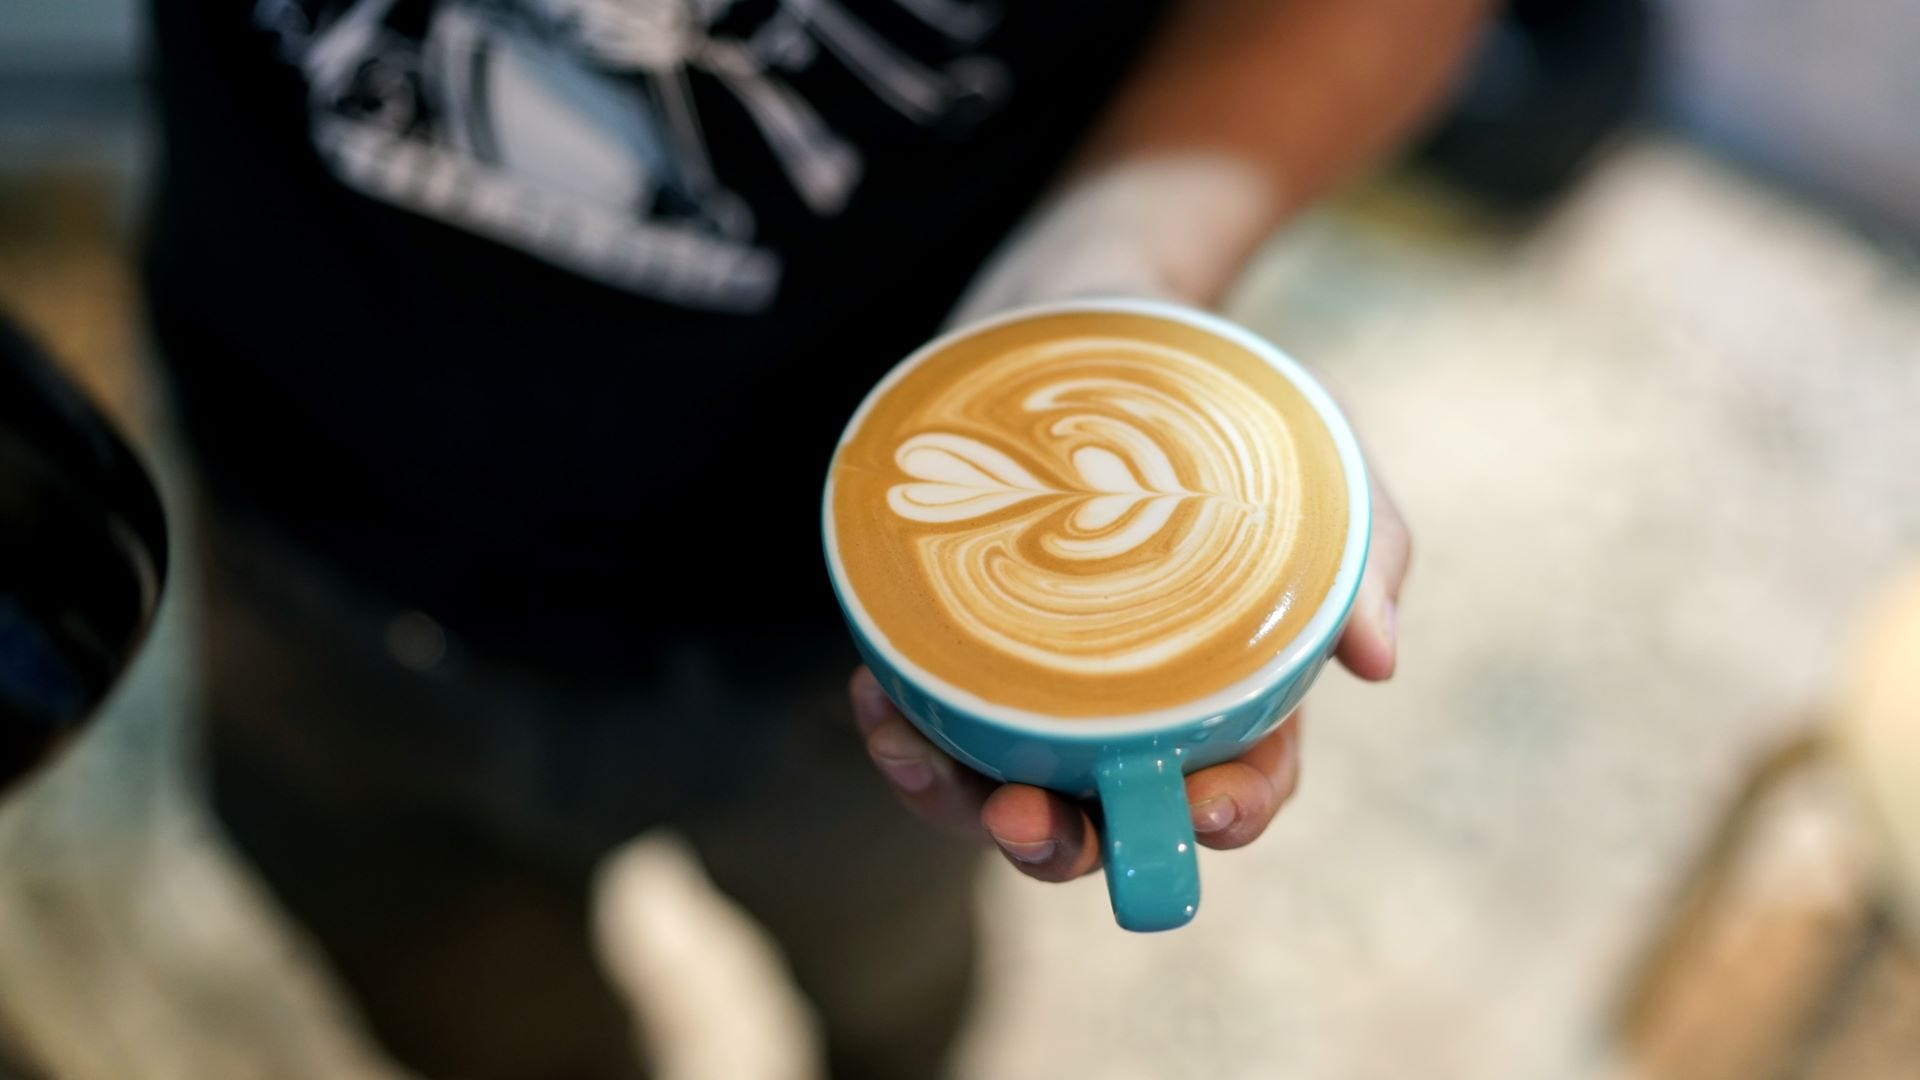 Someone holding a latte with a milk heart in a mug.